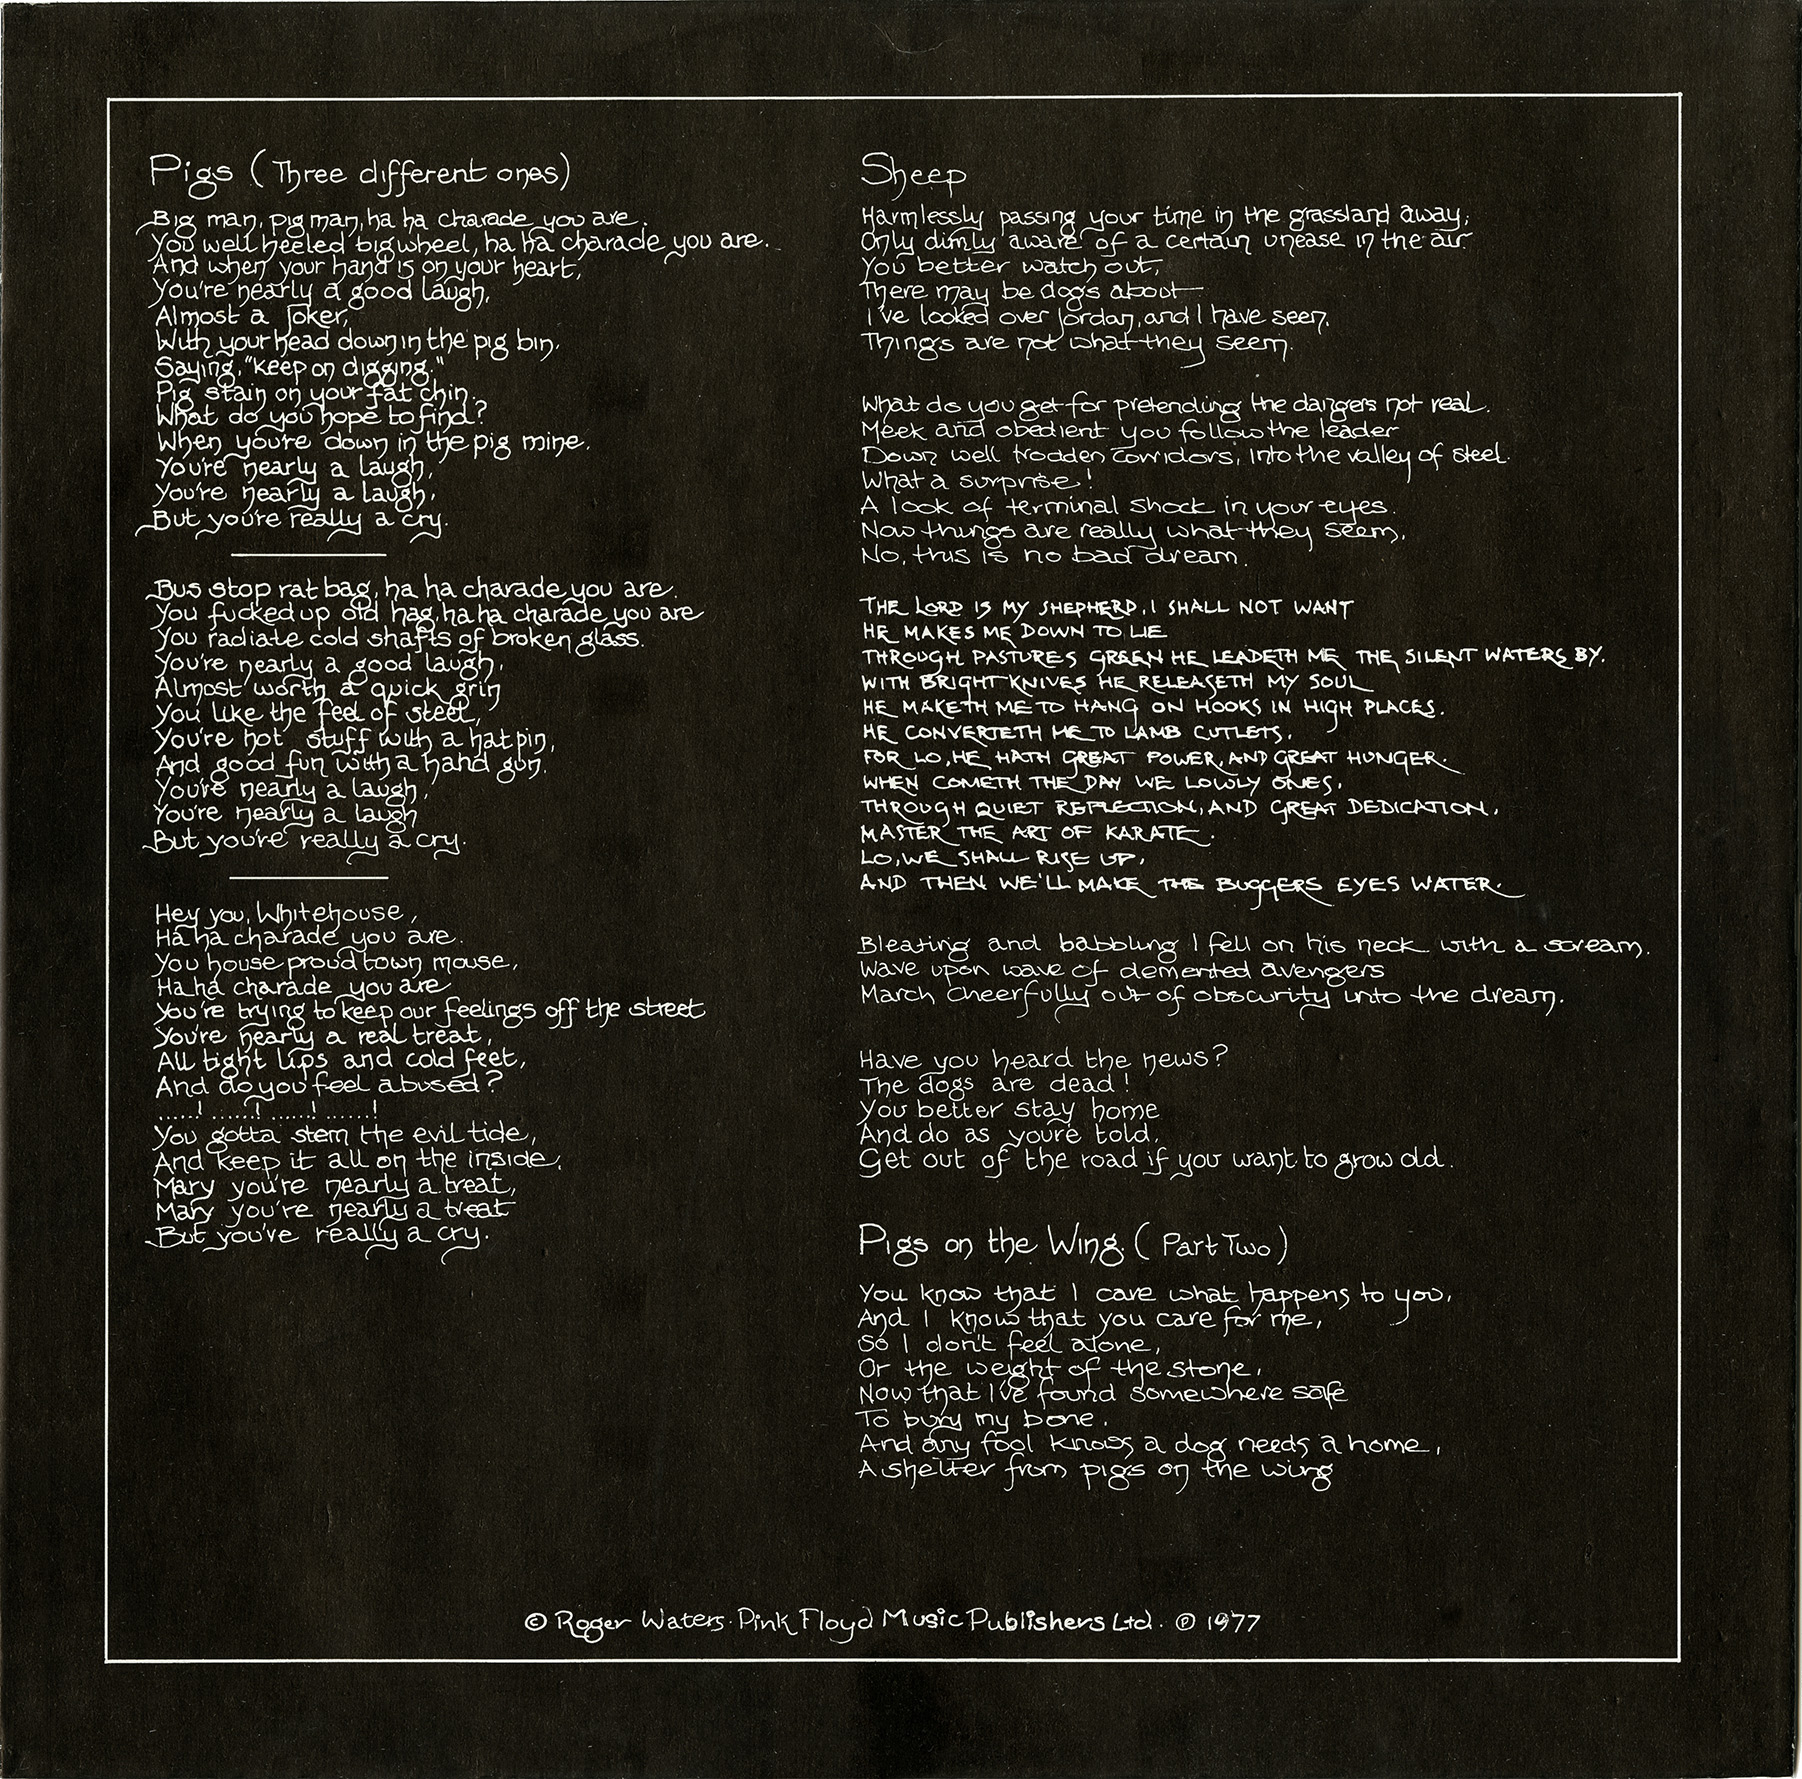 back to black lyrics